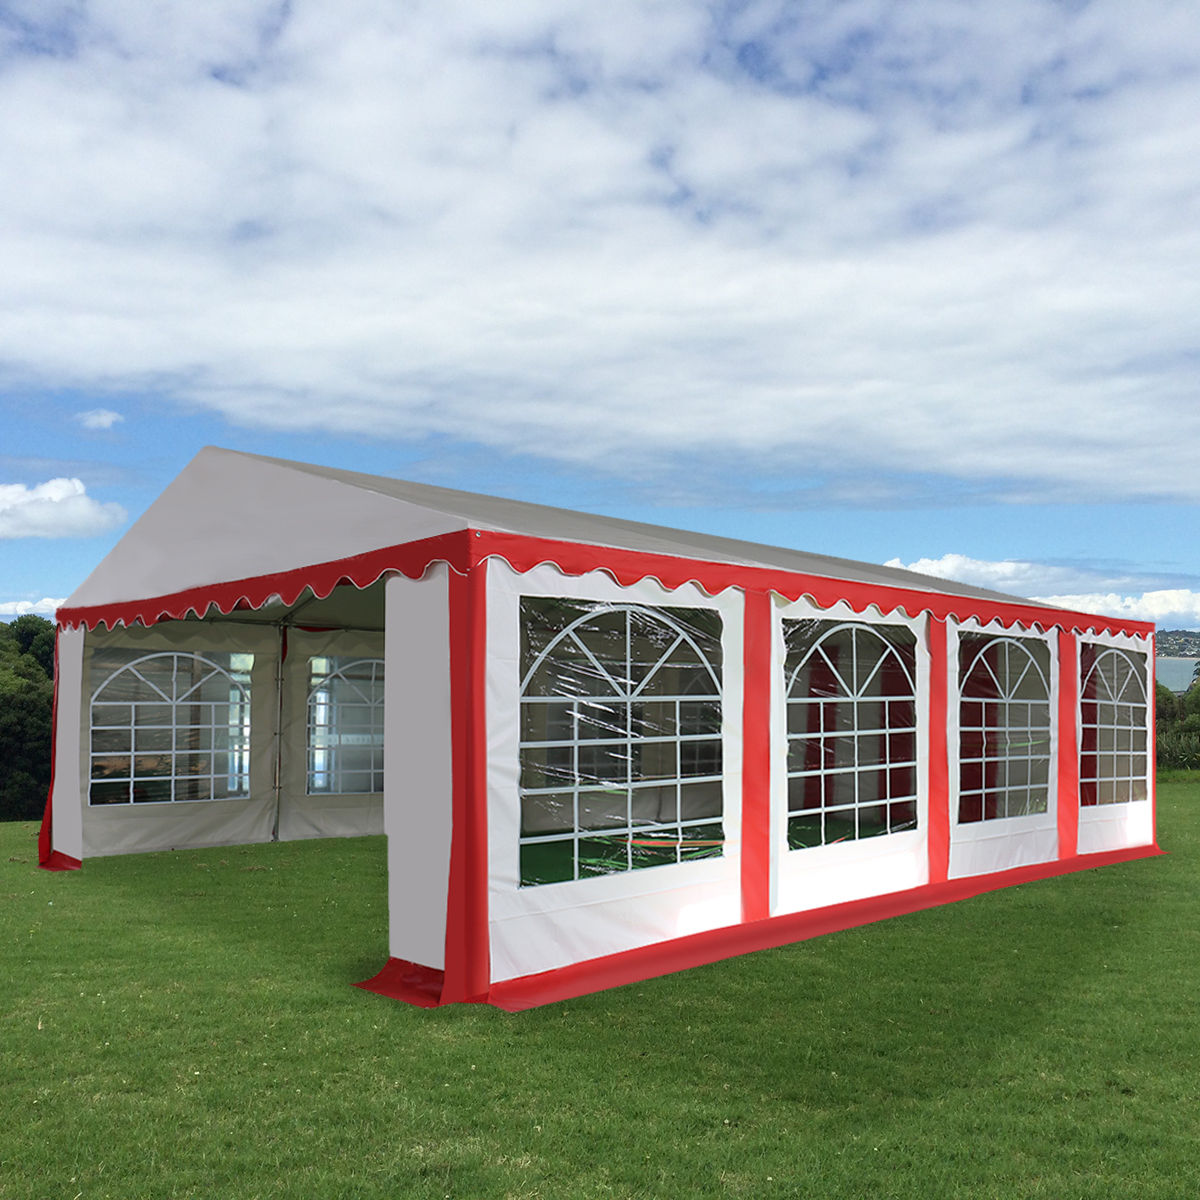 Costway 16 2 5'X26' Tent Shelter Heavy Duty Outdoor Party Wedding Canopy Carport Red by Costway